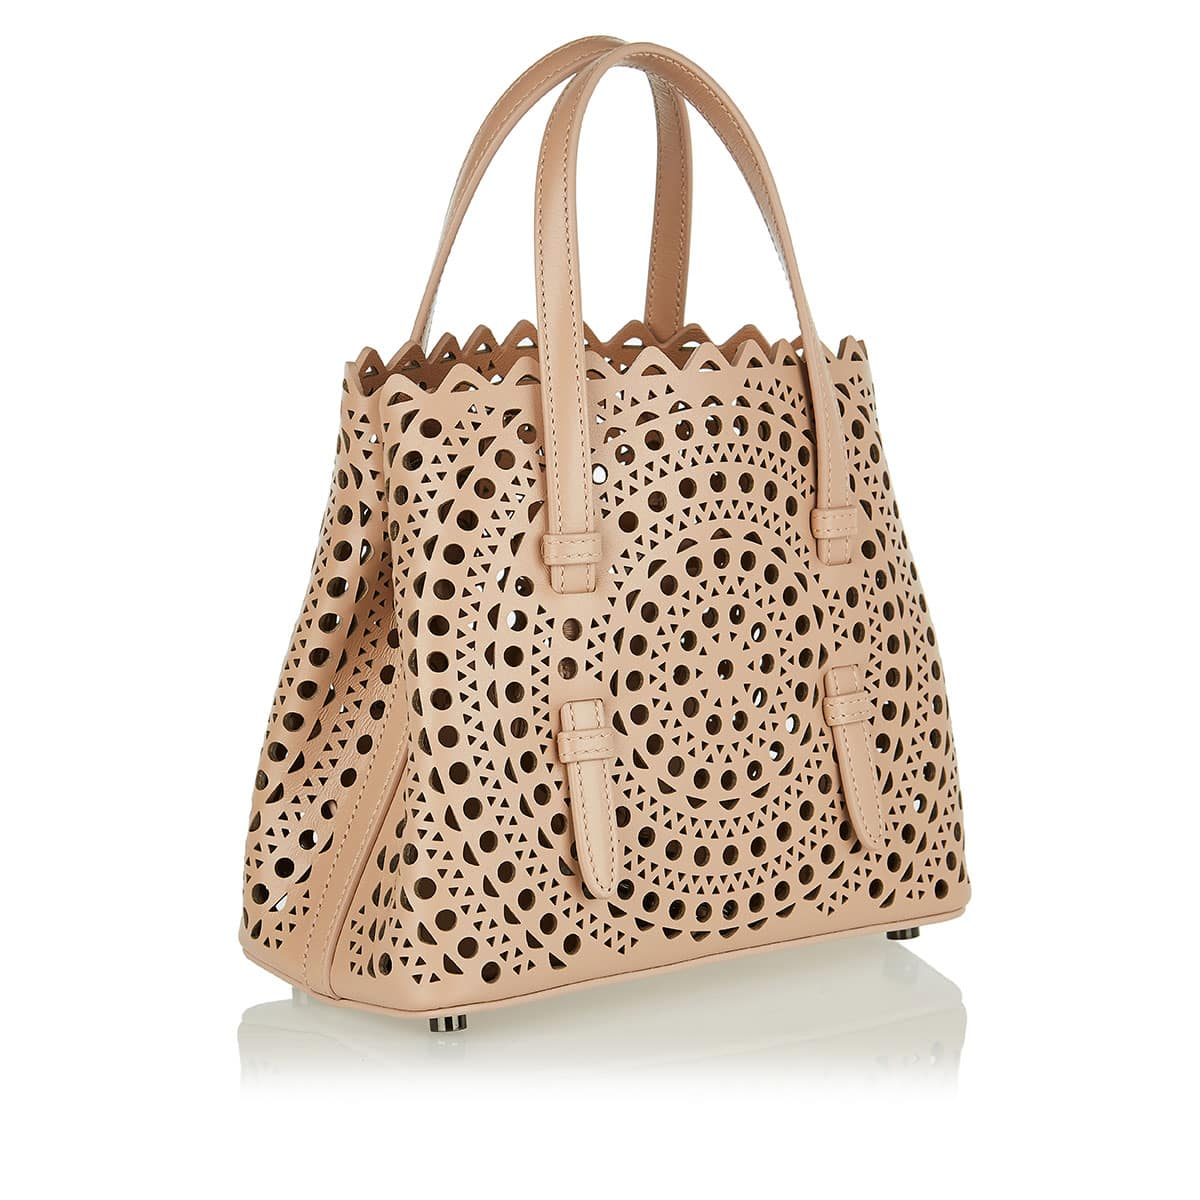 Laser-cut micro leather tote